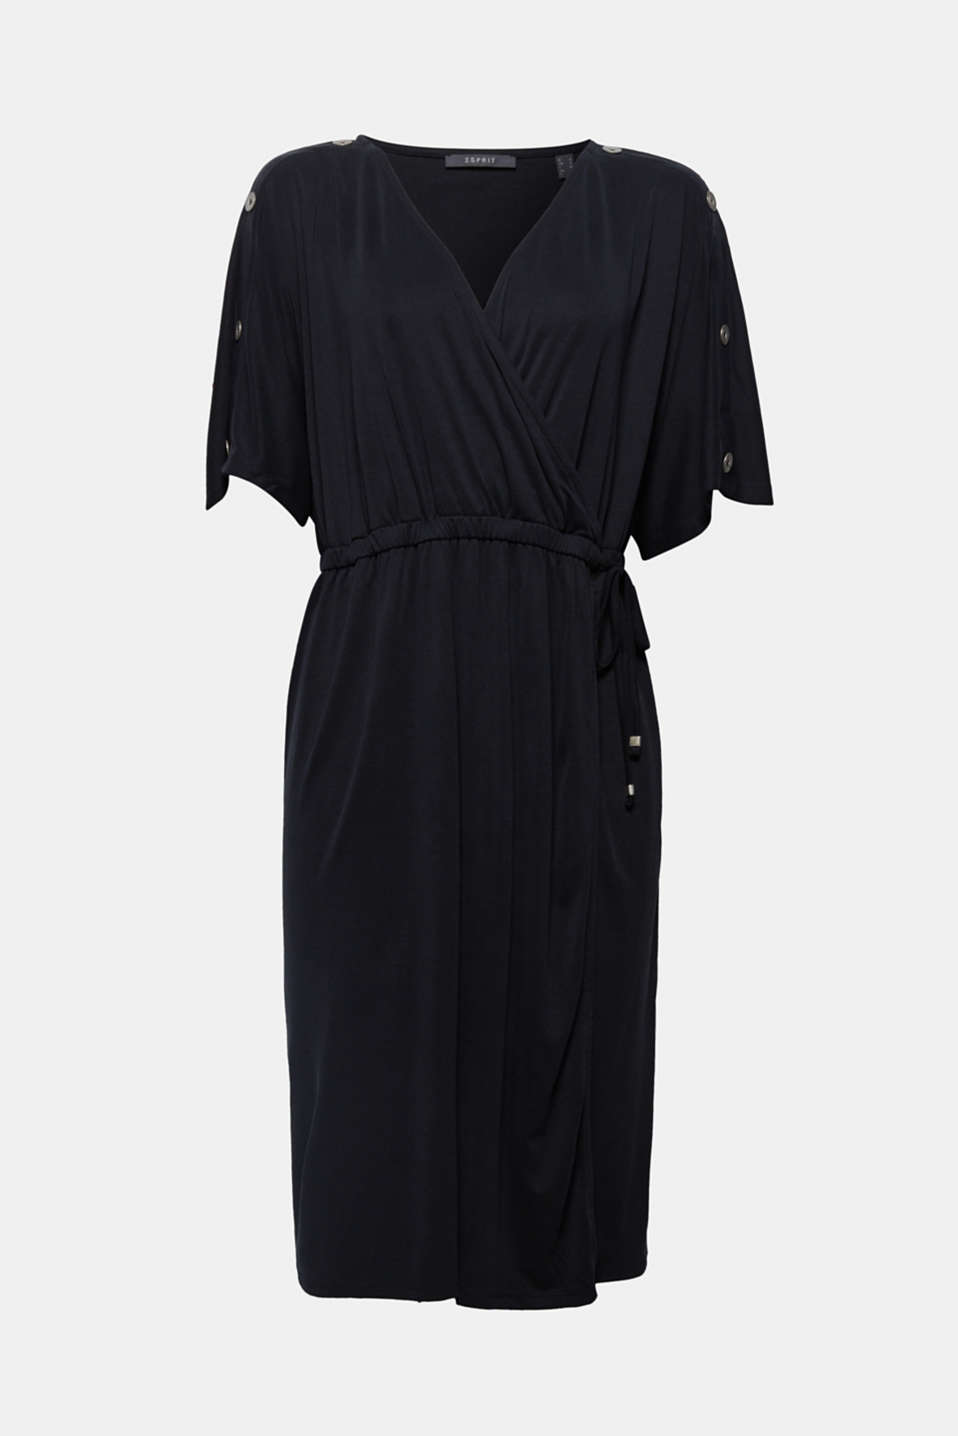 This wrap dress made of softly draped jersey features a stylish 80s look. The highlight: the batwing sleeves adorned with buttons at the top